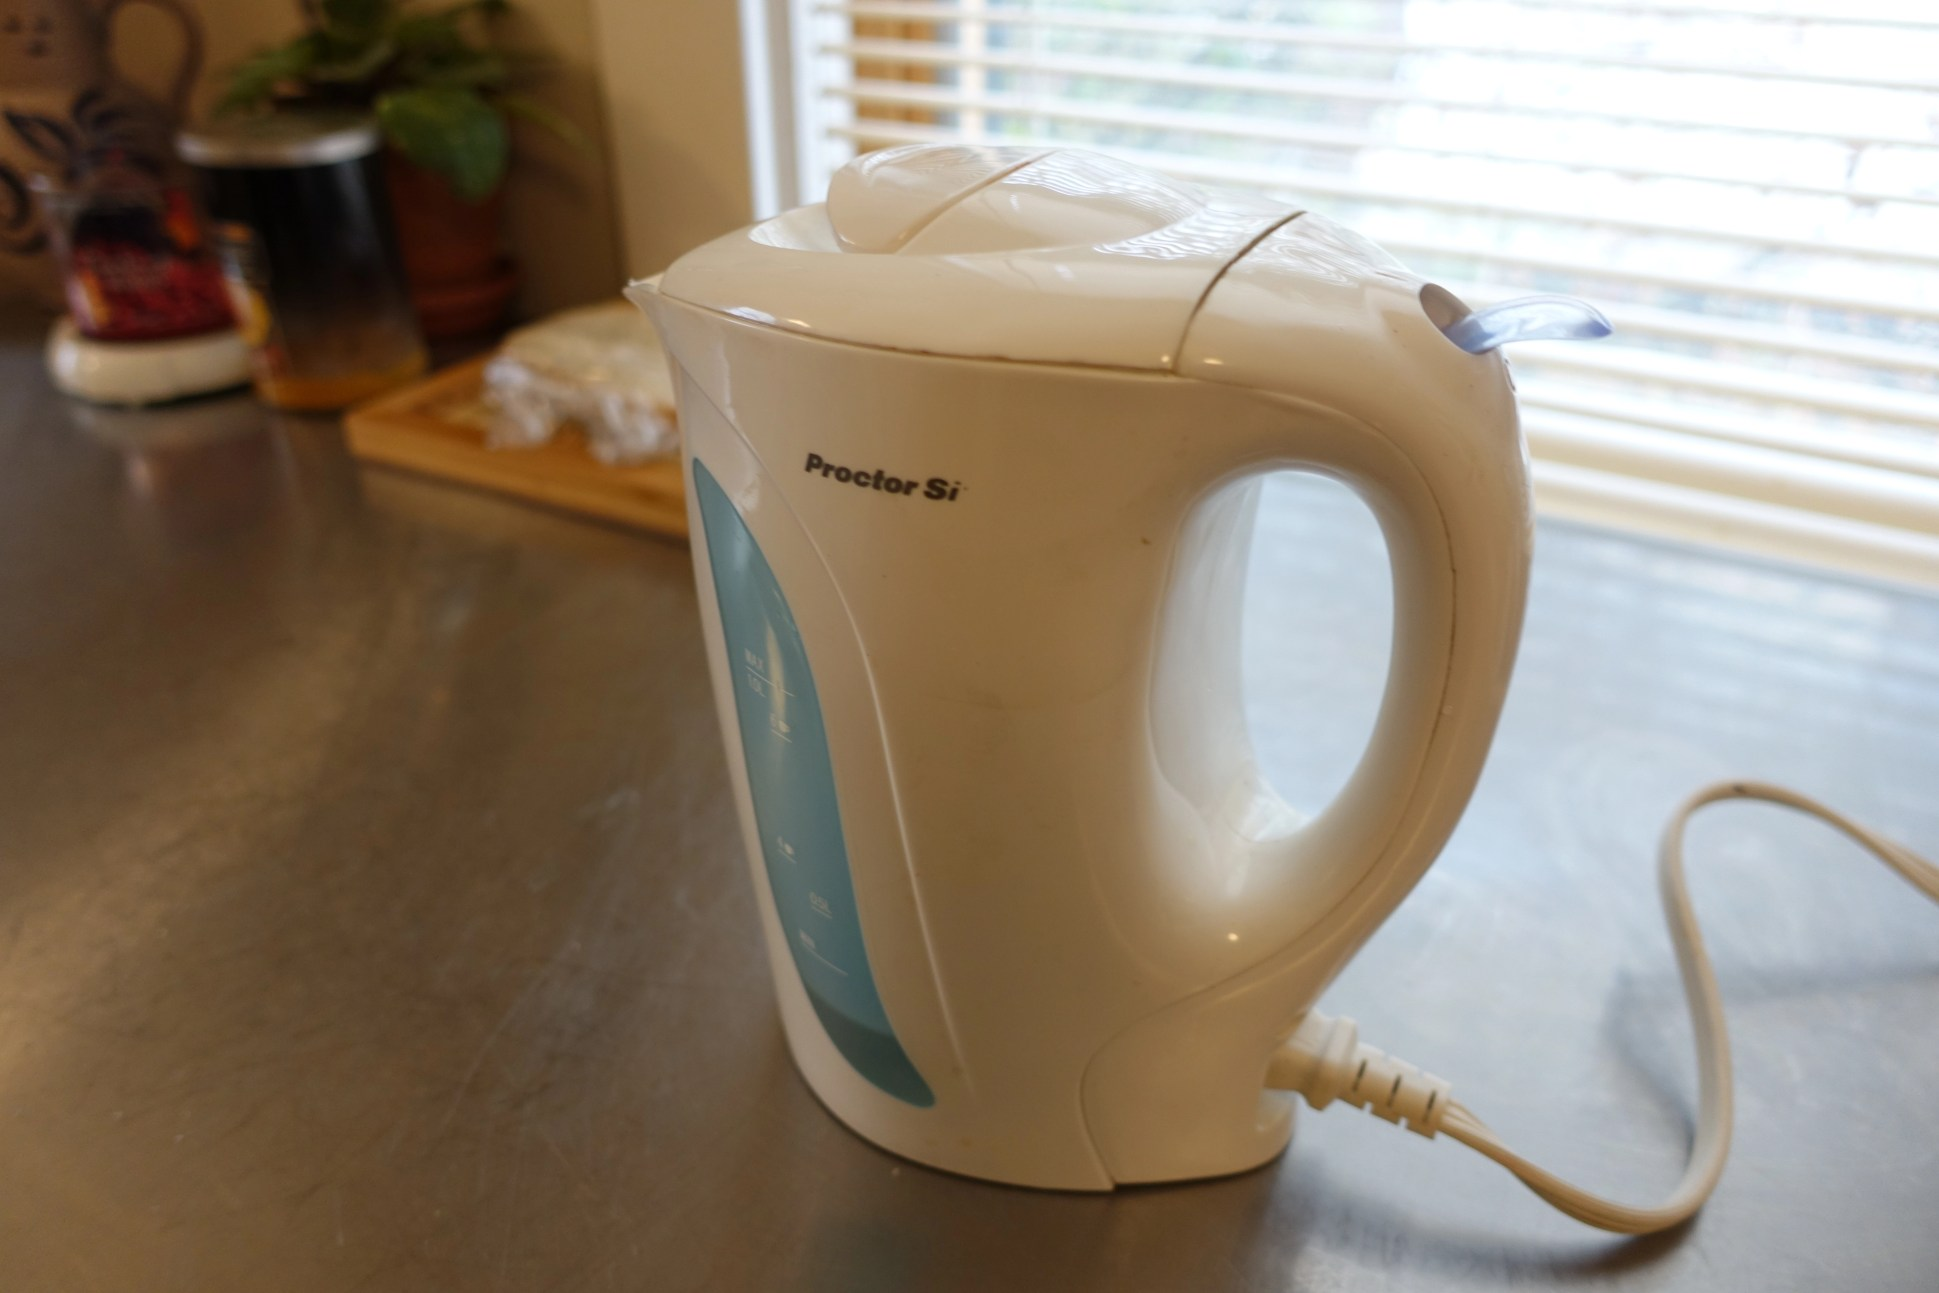 Proctor-Silex 1L electric kettle